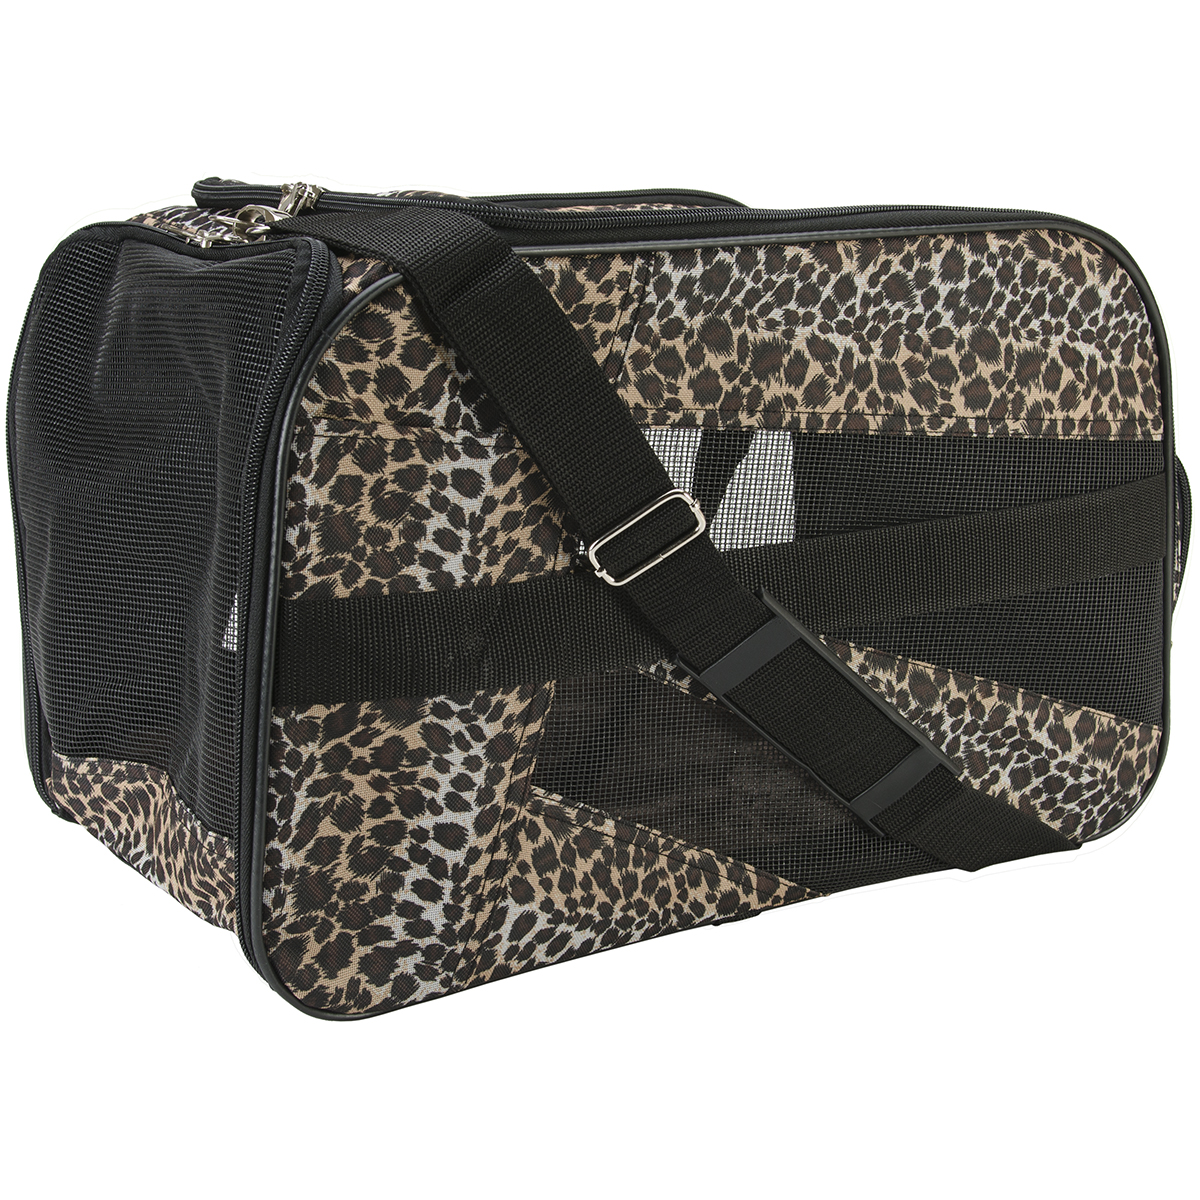 Pet Smart Cart Carrier -Large 22 Inch X 4 Inch X 12 Inch-Leopard